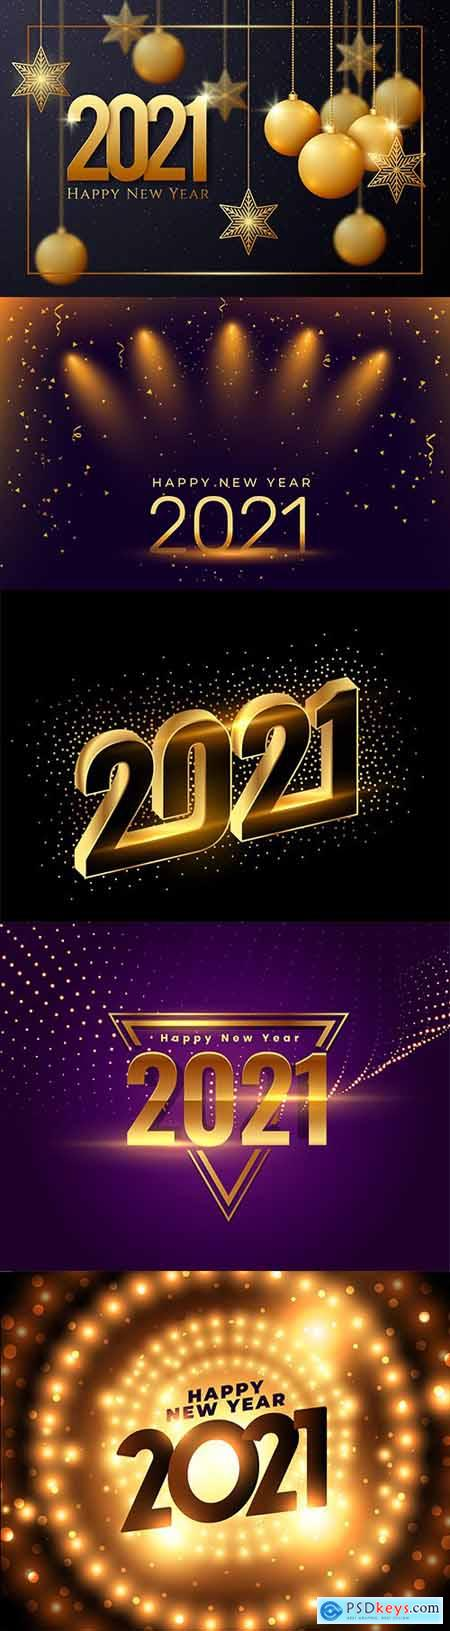 New Year 2021 background with realistic gold decor